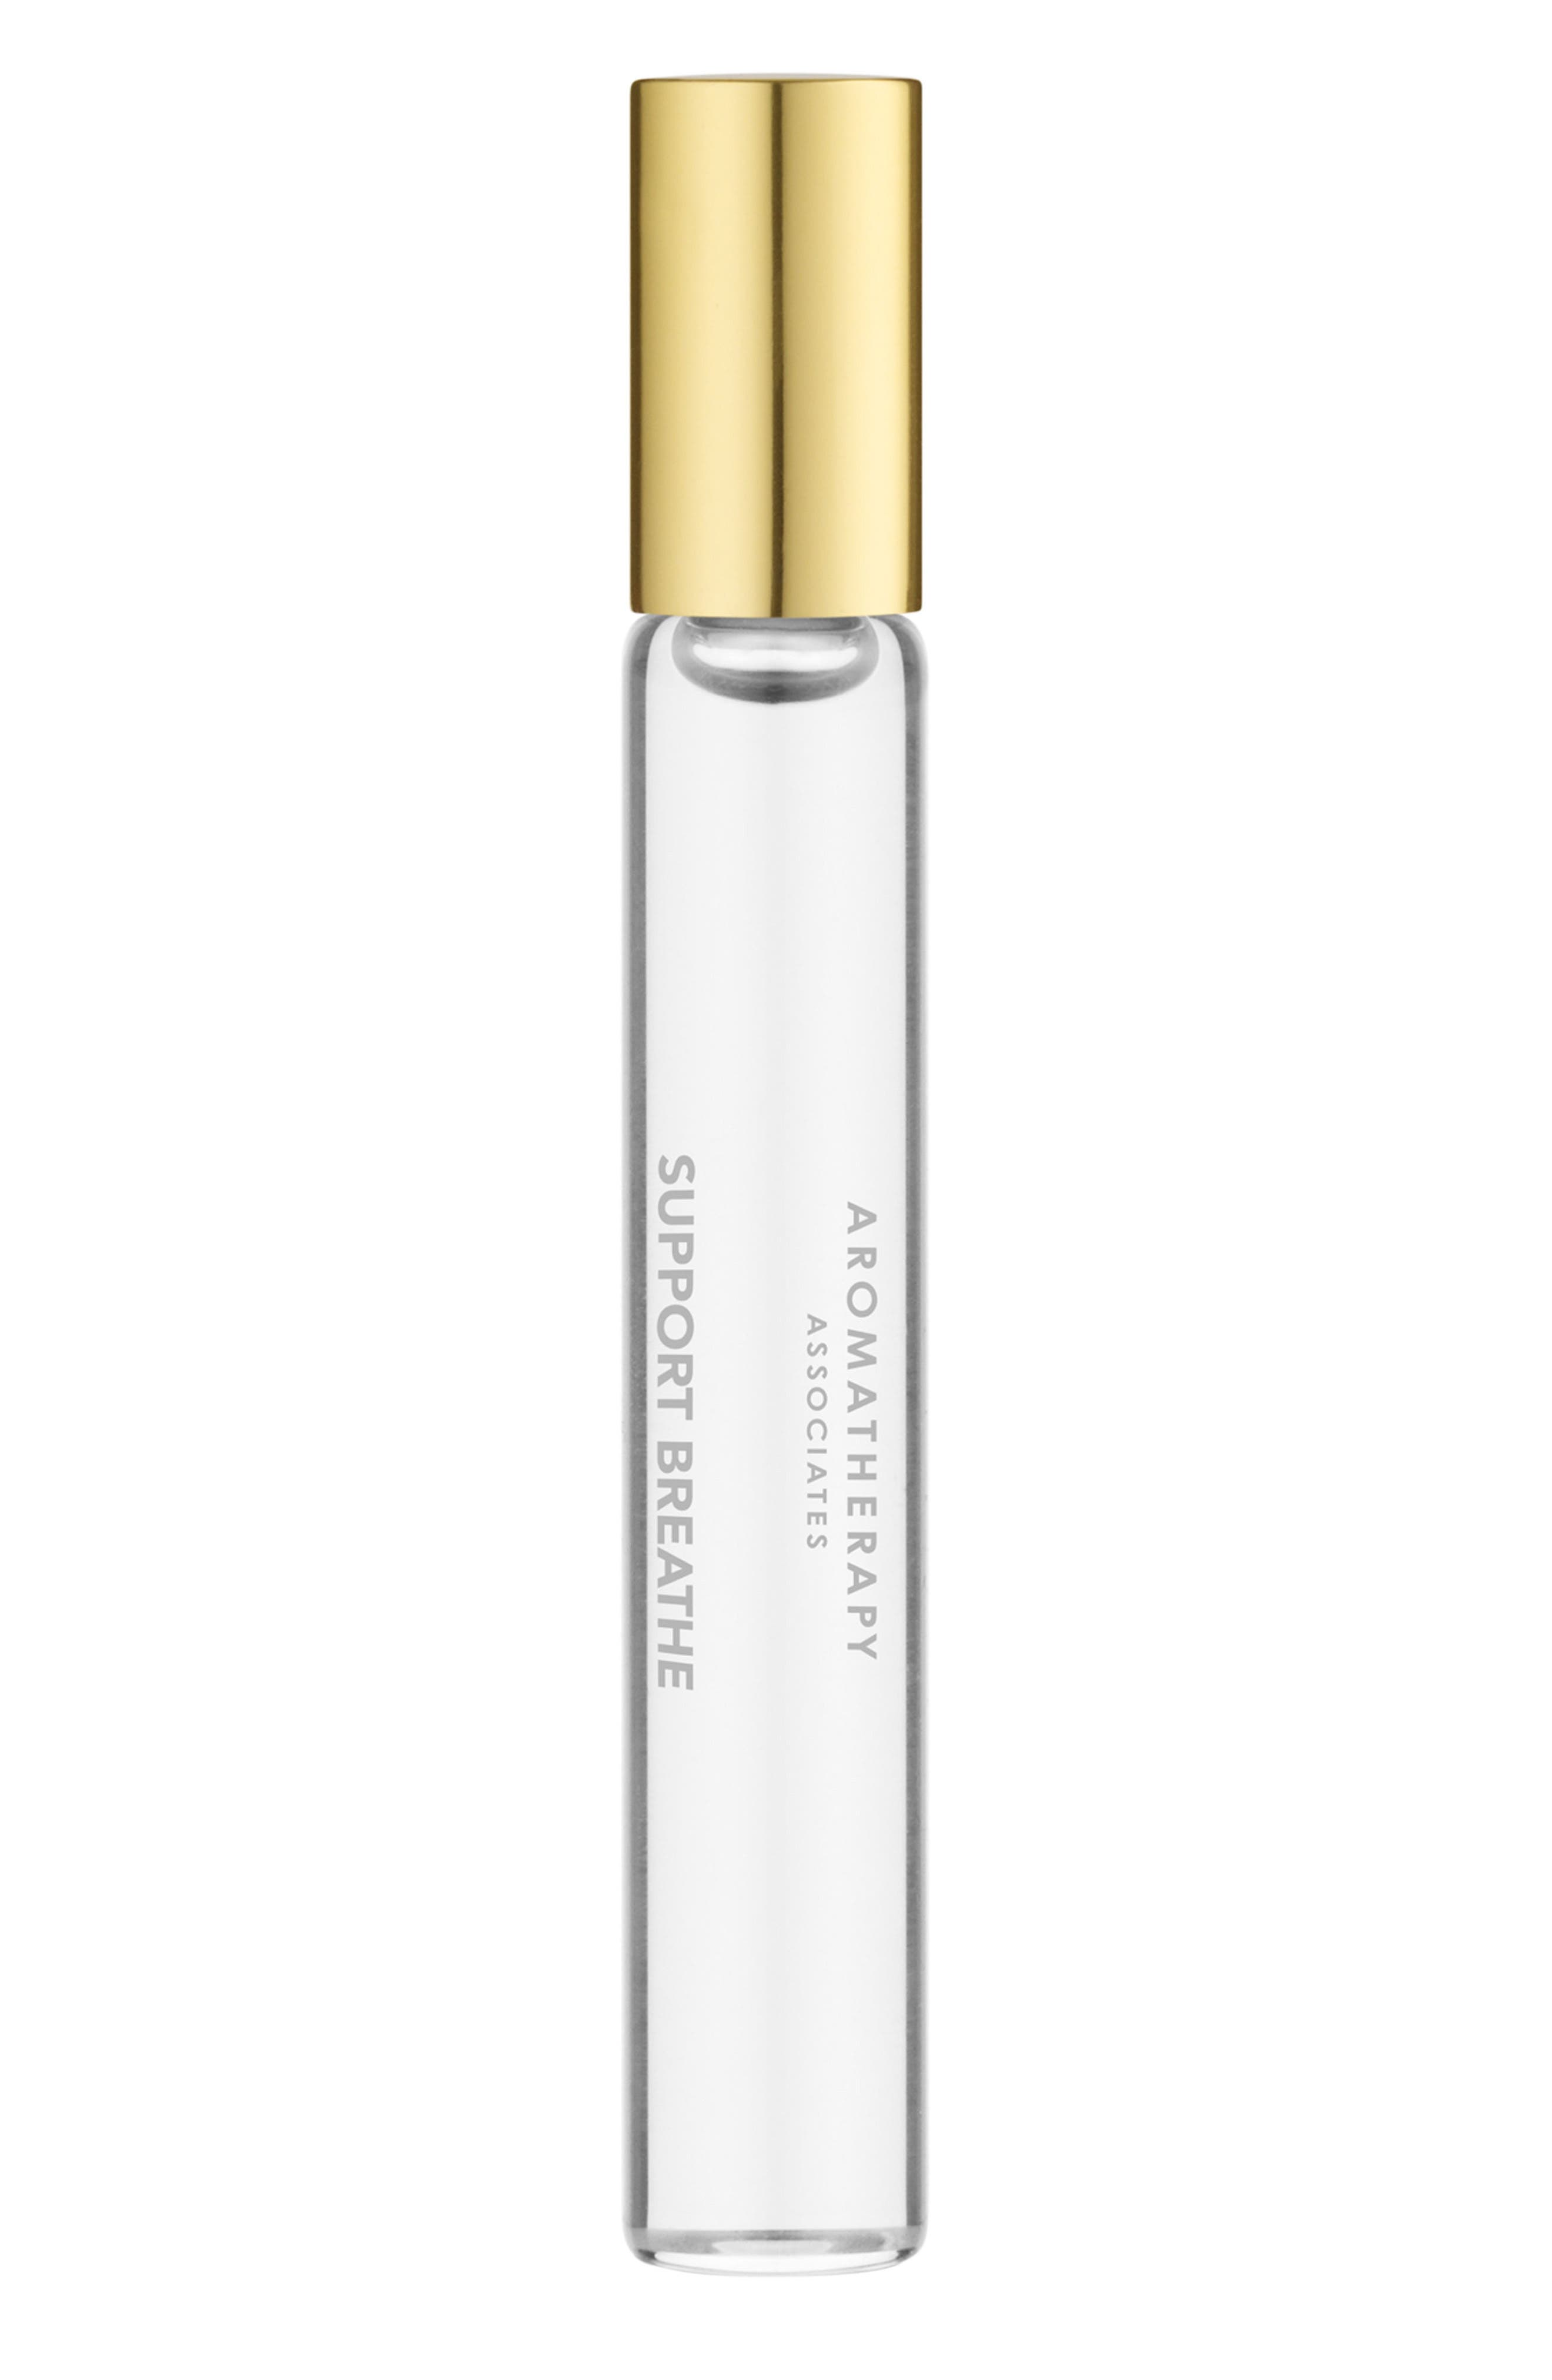 Alternate Image 2  - Aromatherapy Associates Support Breathe Rollerball